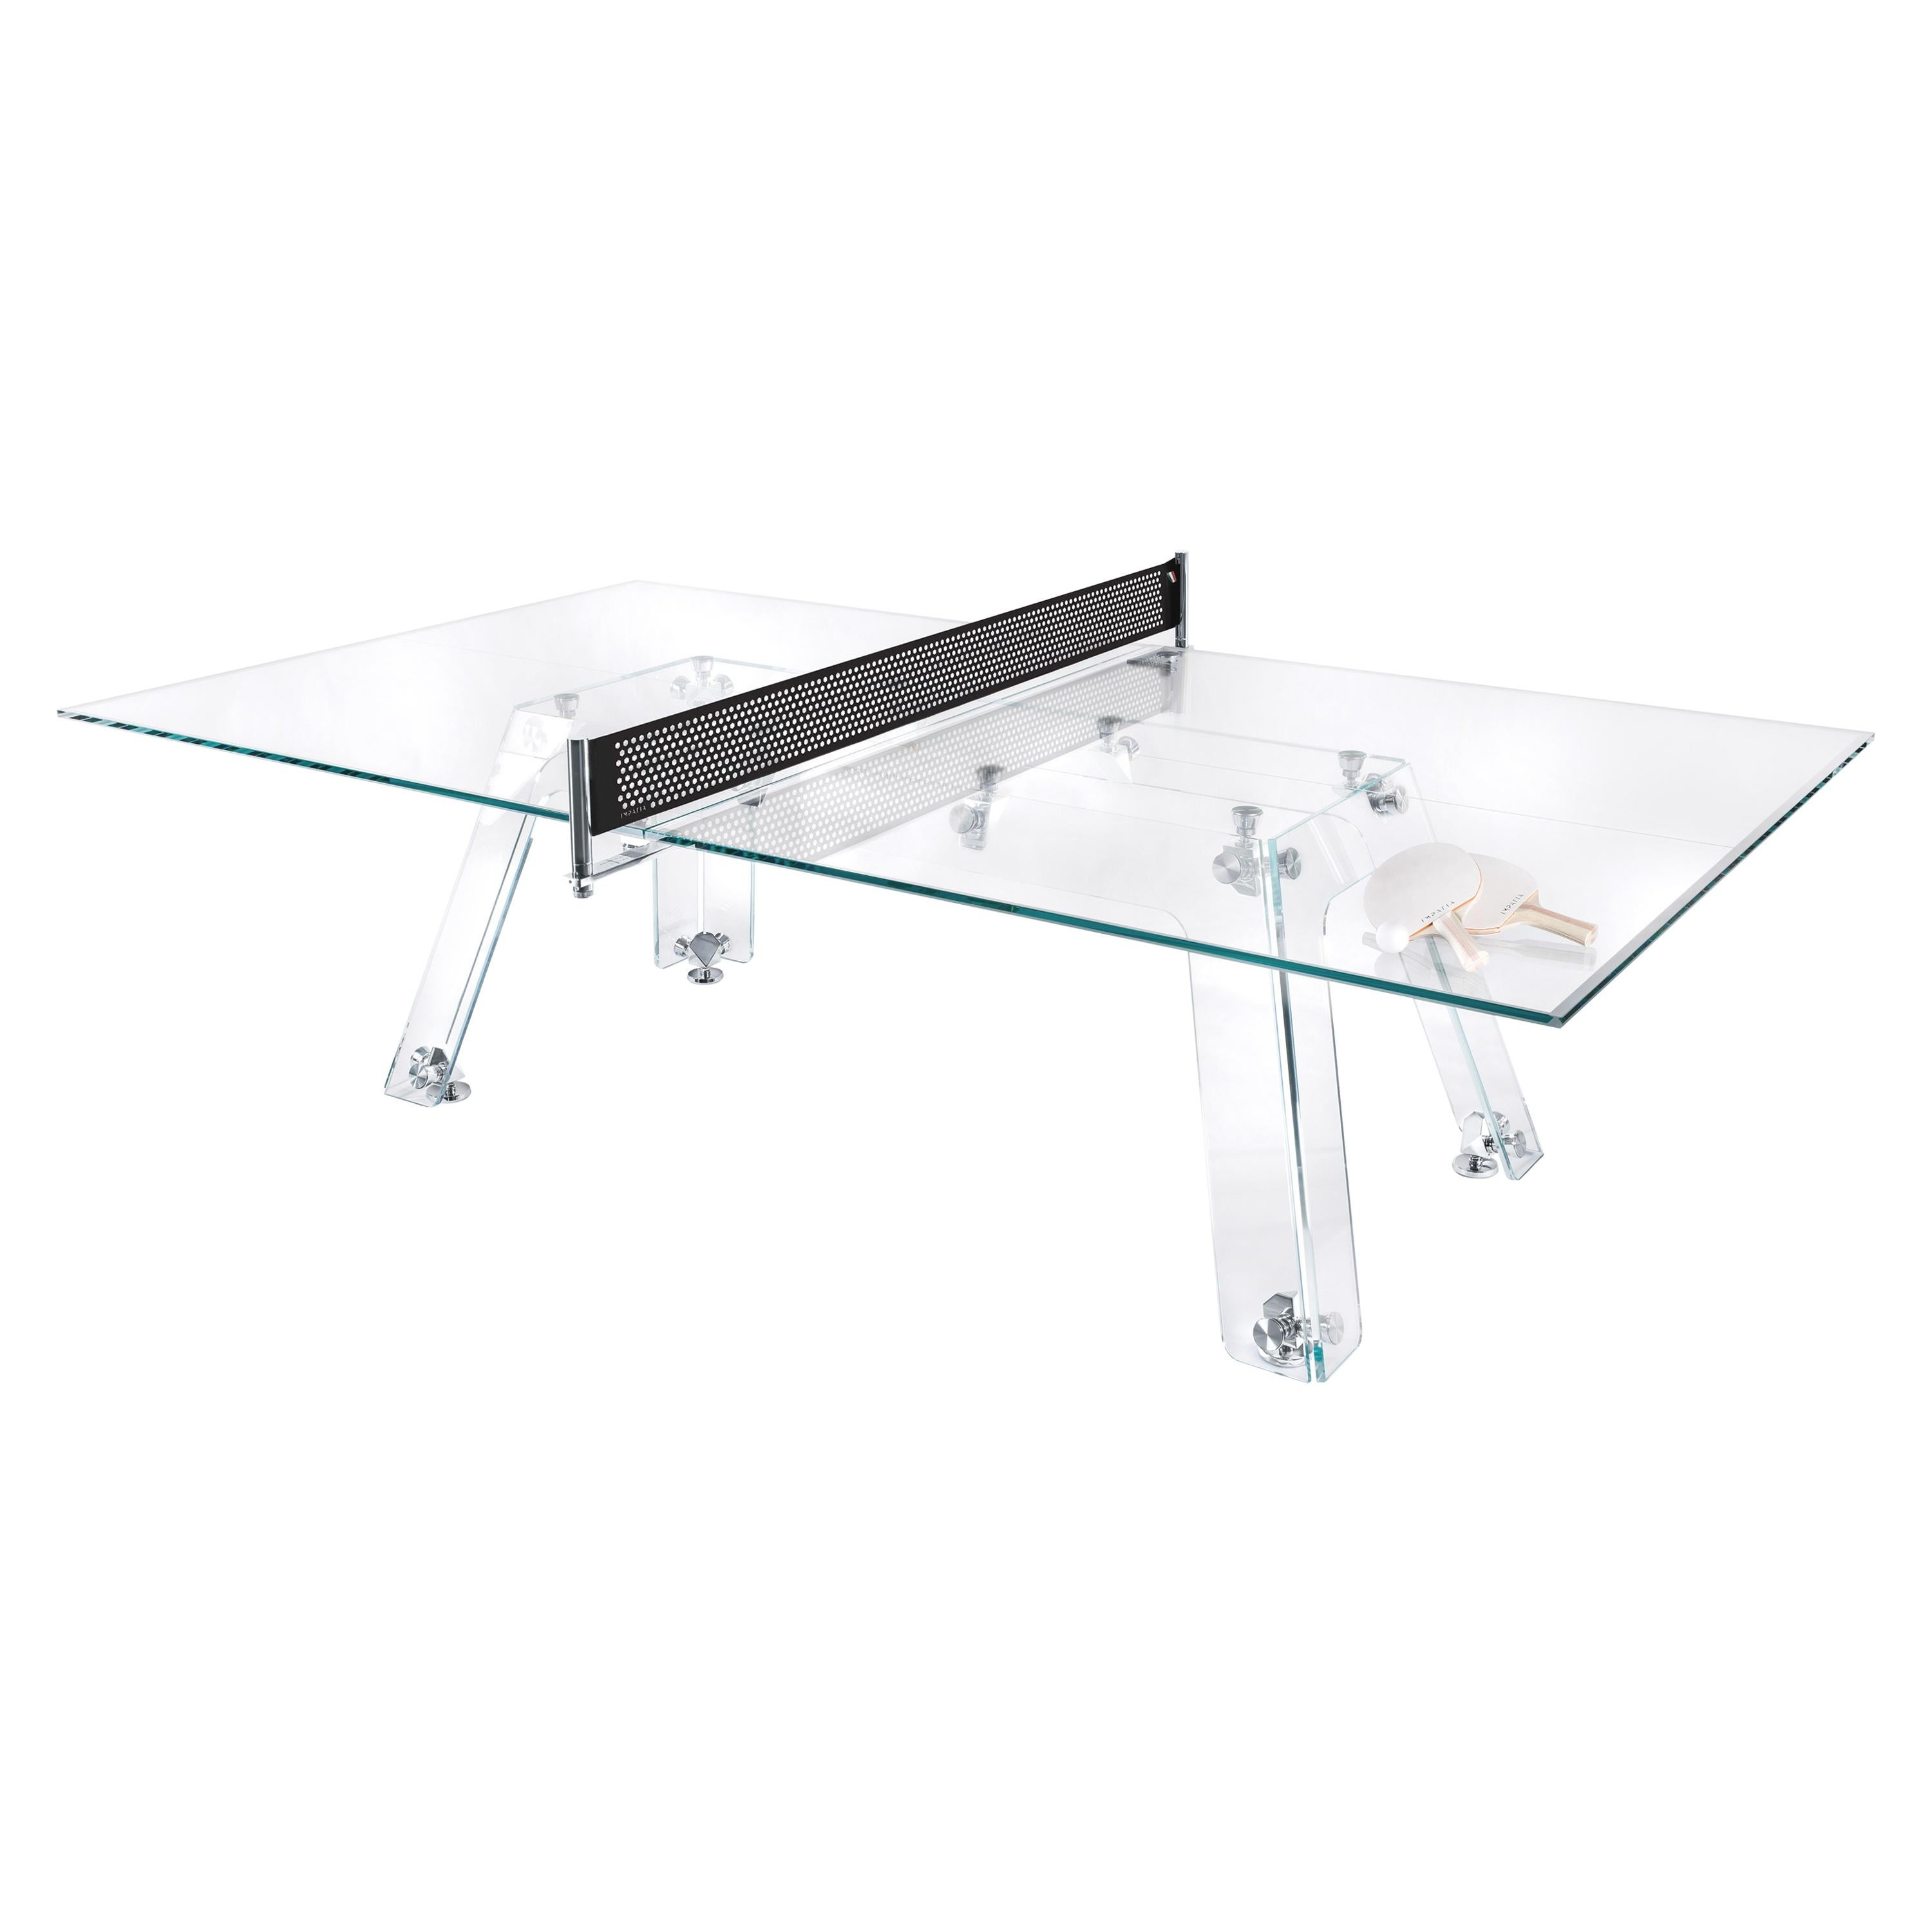 Lungolinea Chrome Edition, Ping Pong Table, by Impatia